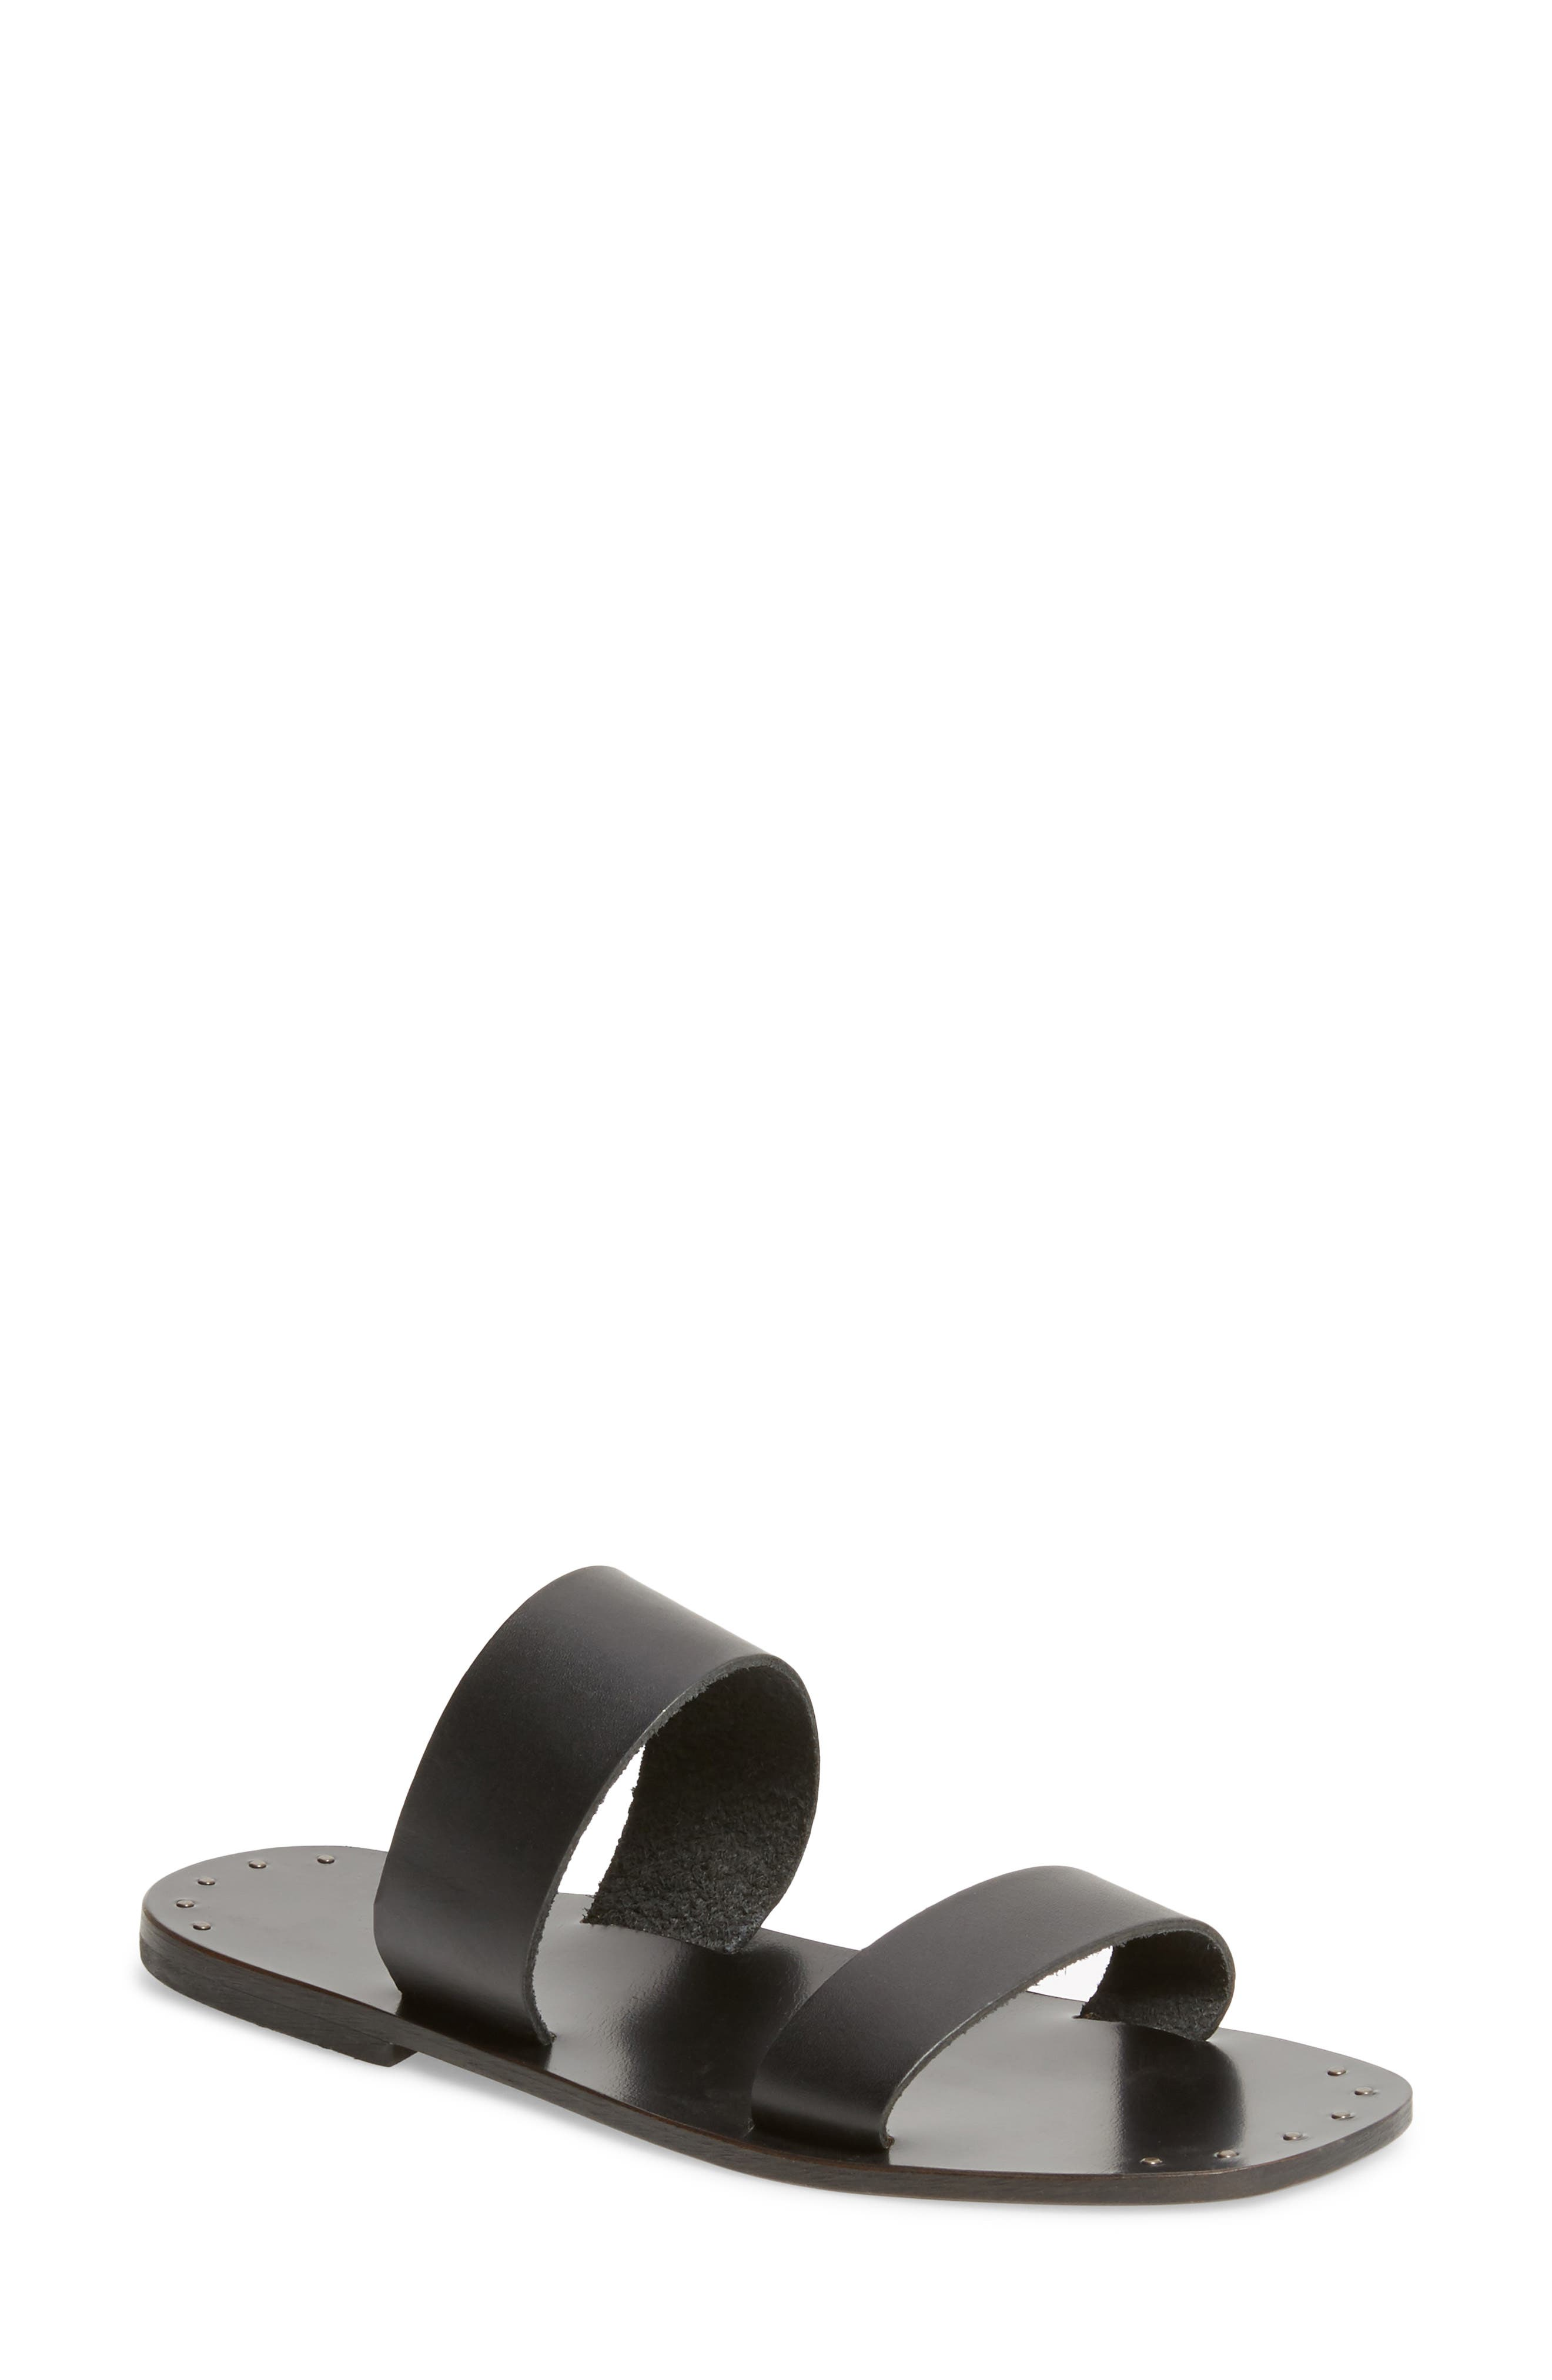 Image of Joie Bannerly Strappy Sandal